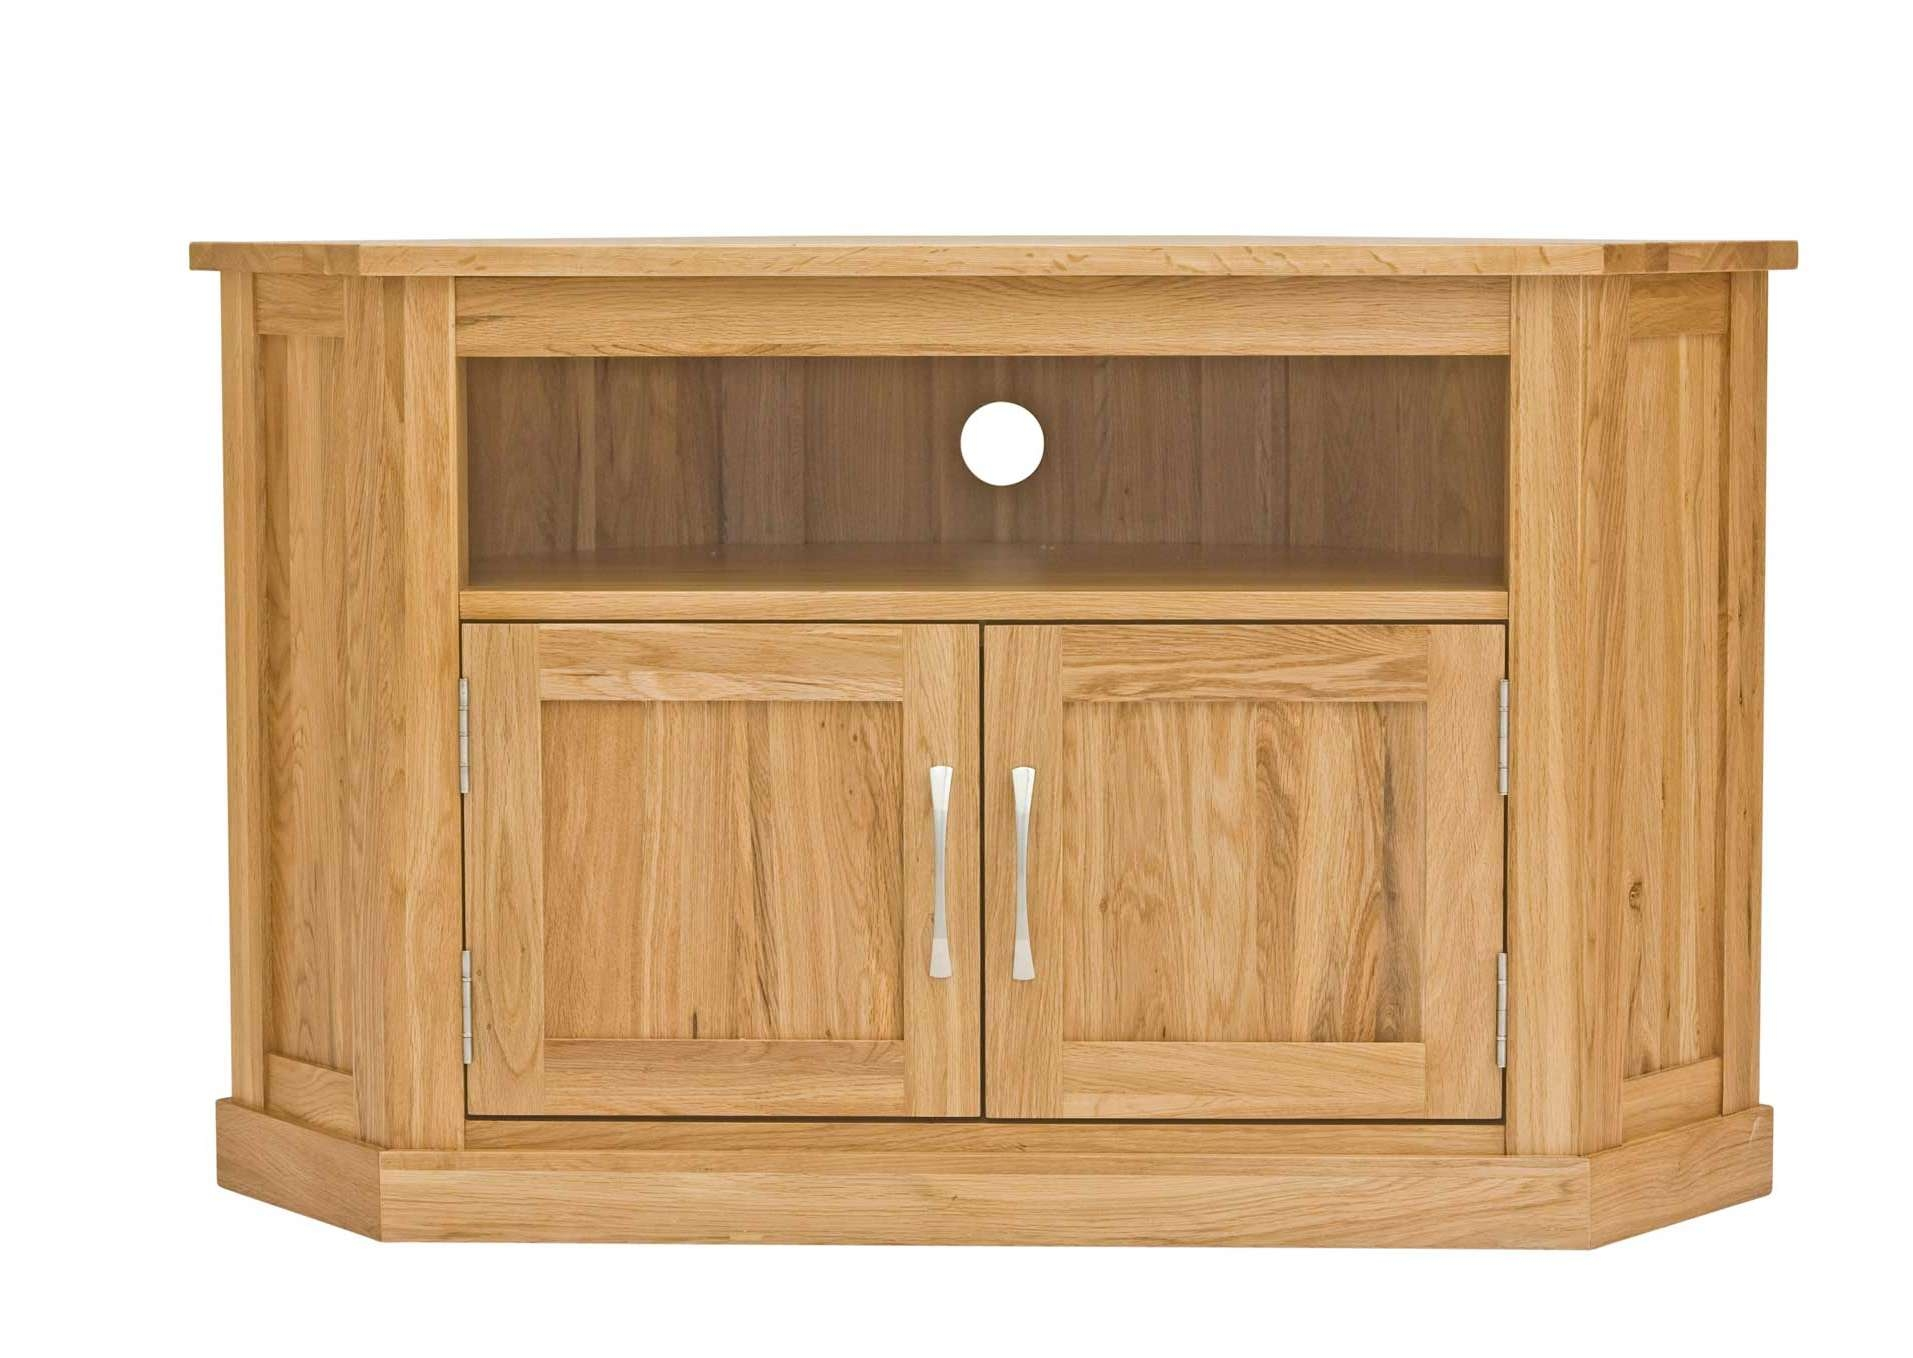 Classic Oak Corner Television Cabinet | Hampshire Furniture For Corner Wooden Tv Stands (View 1 of 15)